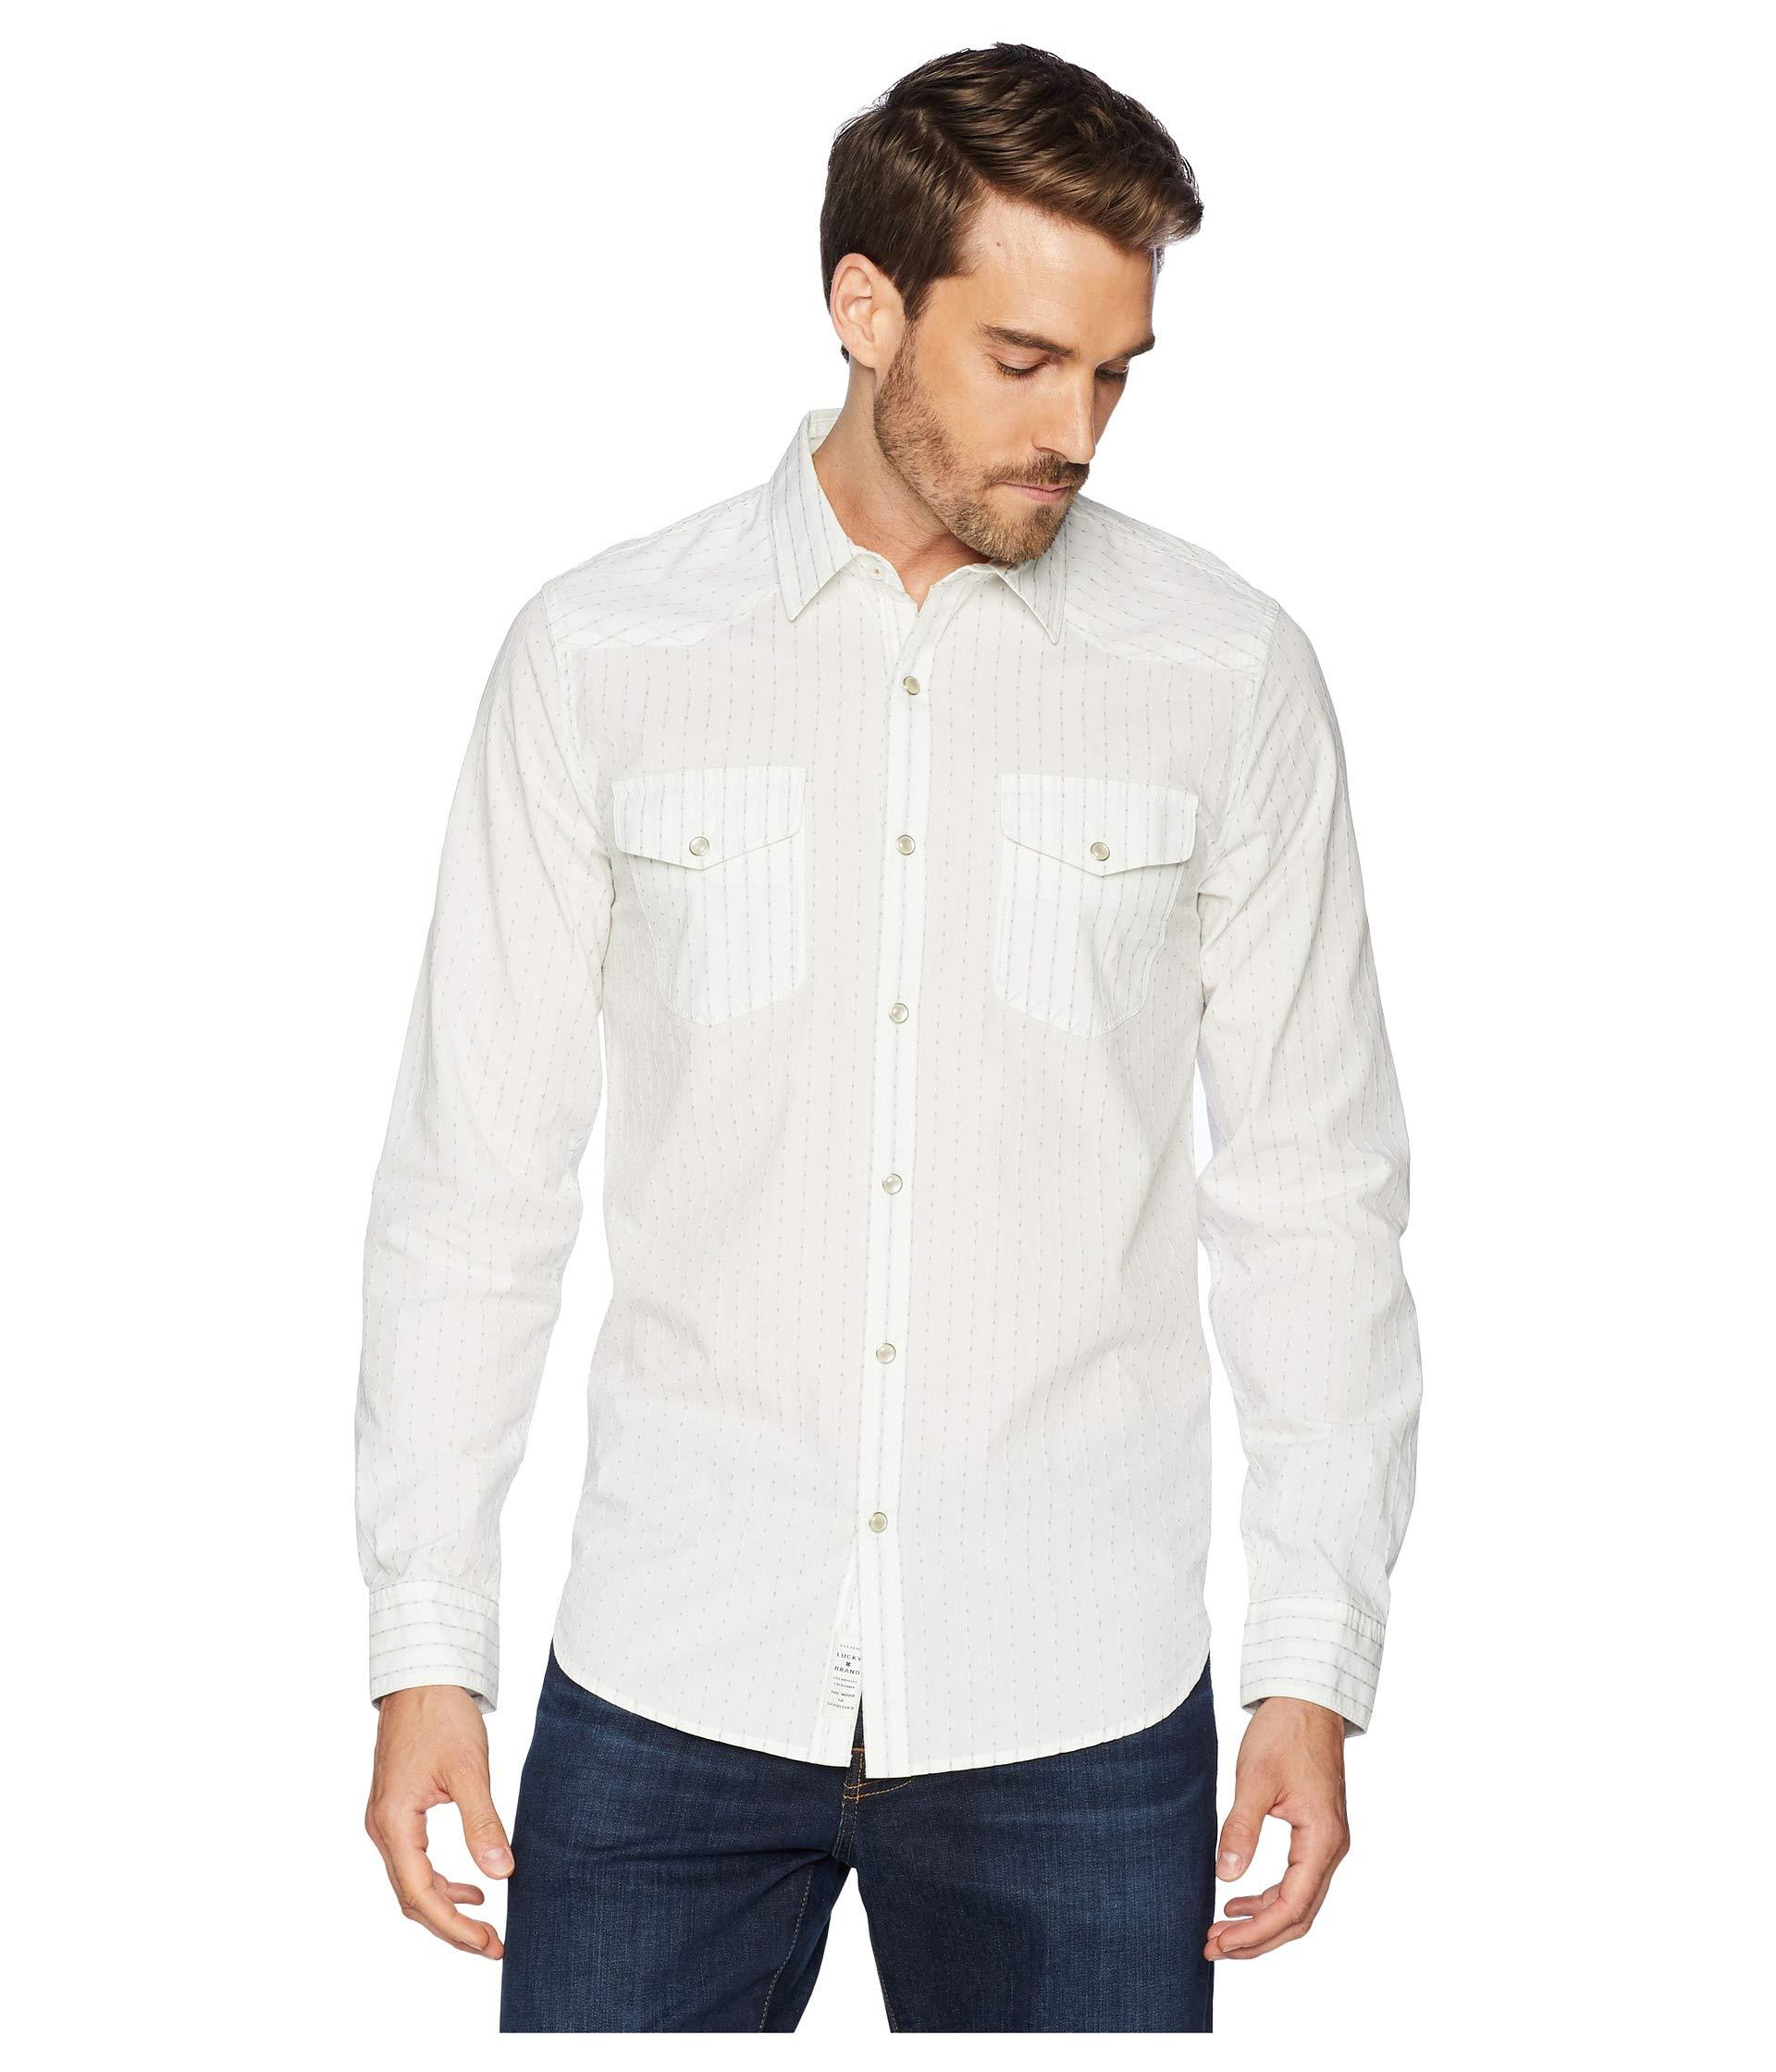 949d752463 Lyst - Lucky Brand Dobby Western Shirt in White for Men - Save 8%